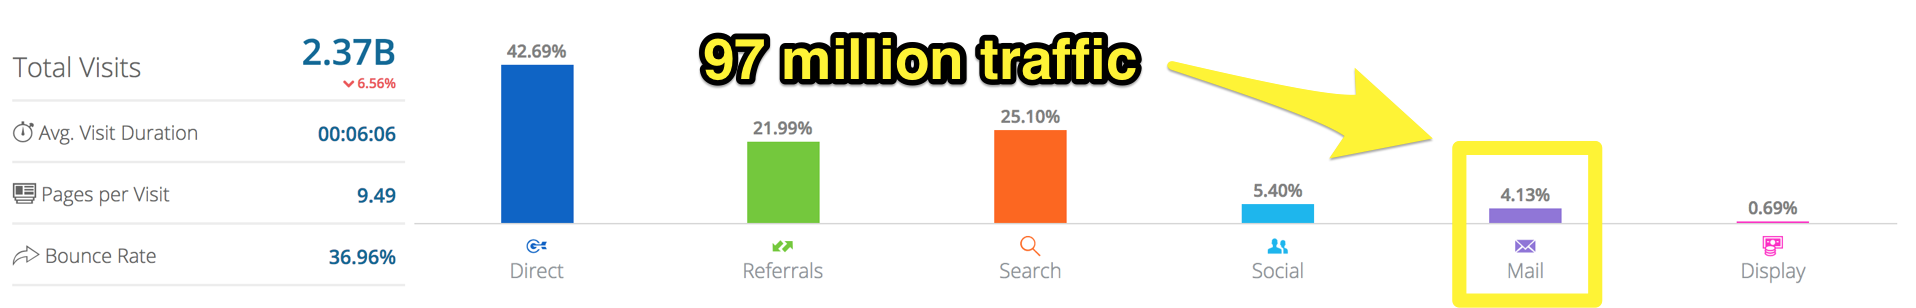 Screenshot showing a graph on the sources of traffic for amazon.com